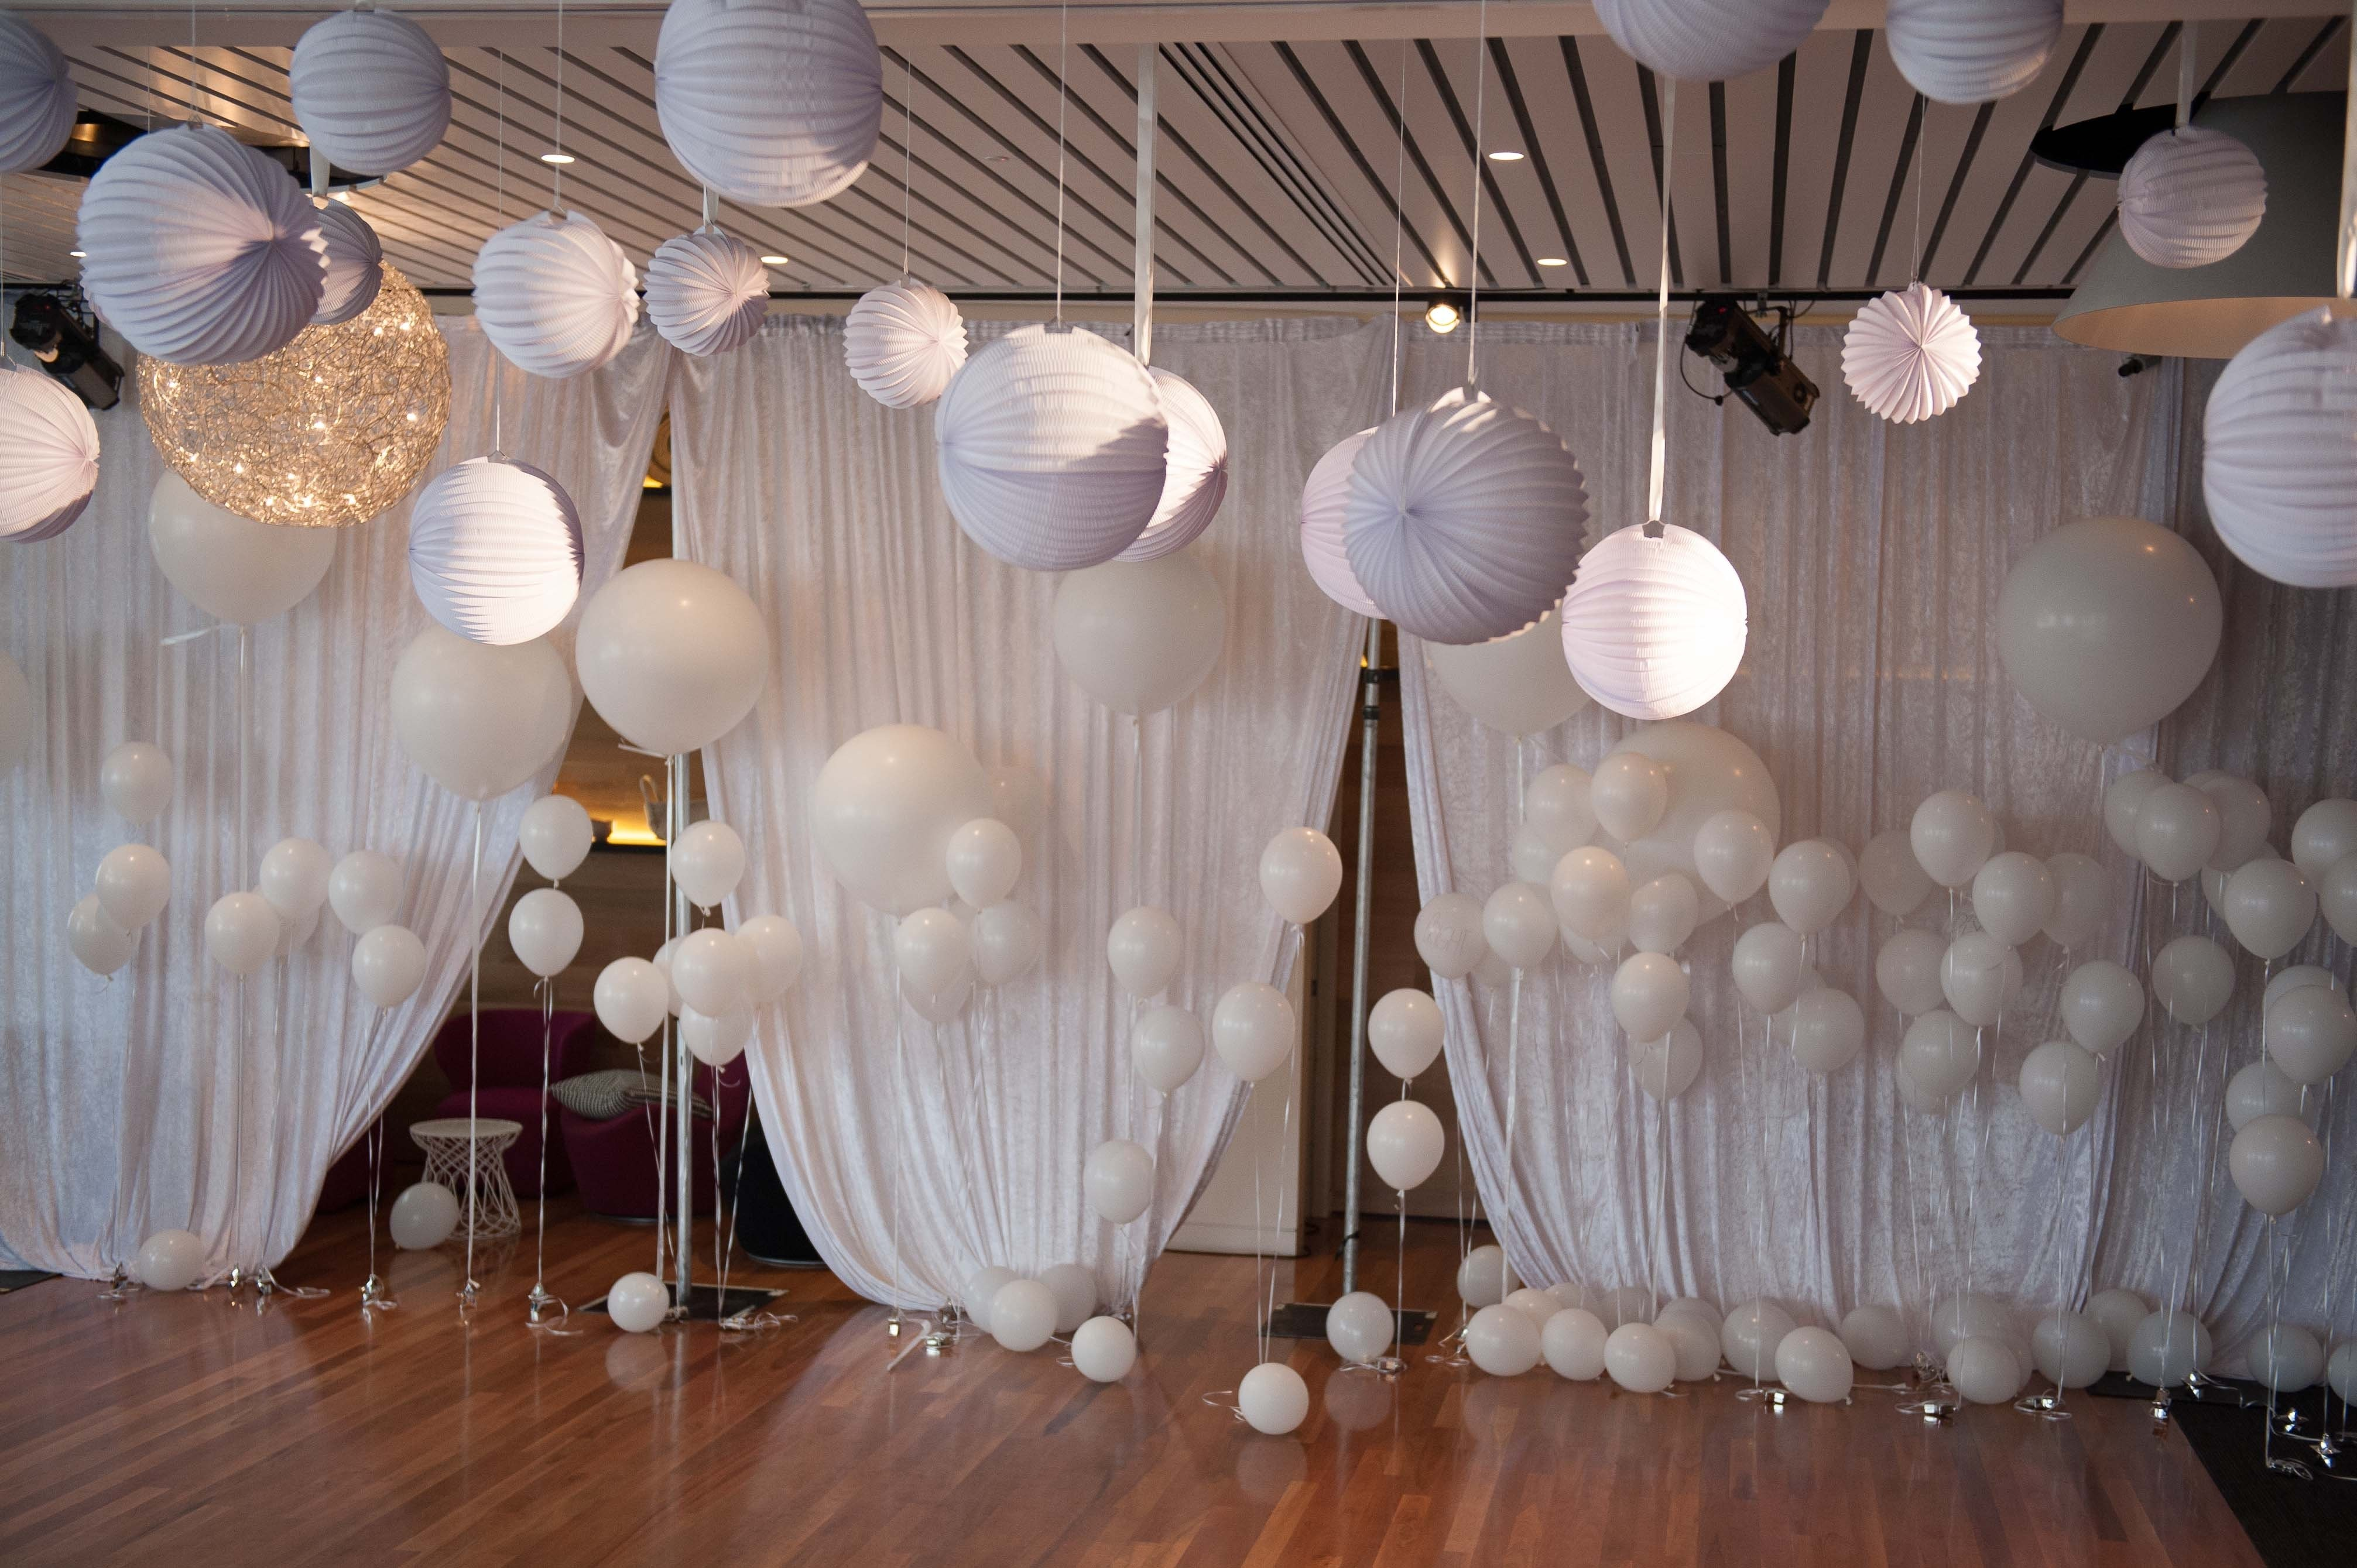 10 Wonderful All White Birthday Party Ideas white party archives parties 2 orderparties 2 order 1 2020